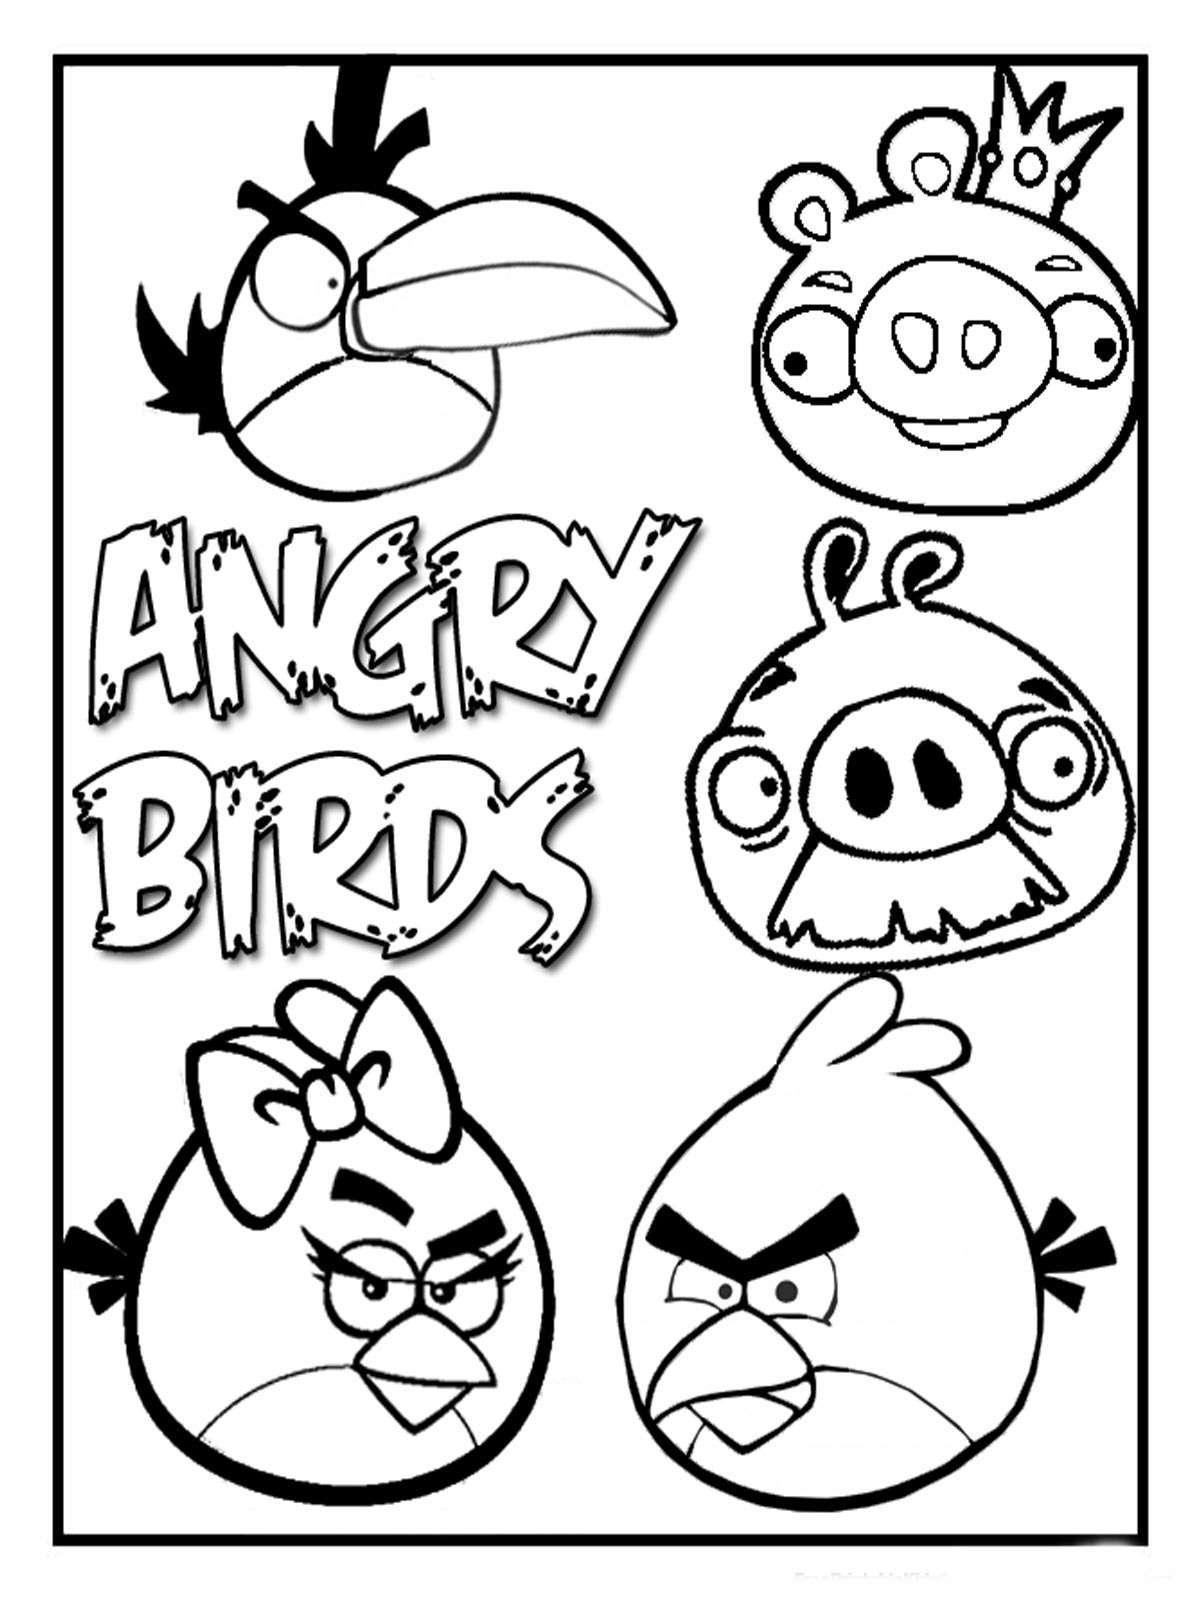 angry birds pictures to print new angry birds coloring pages all free coloring page print pictures birds angry to